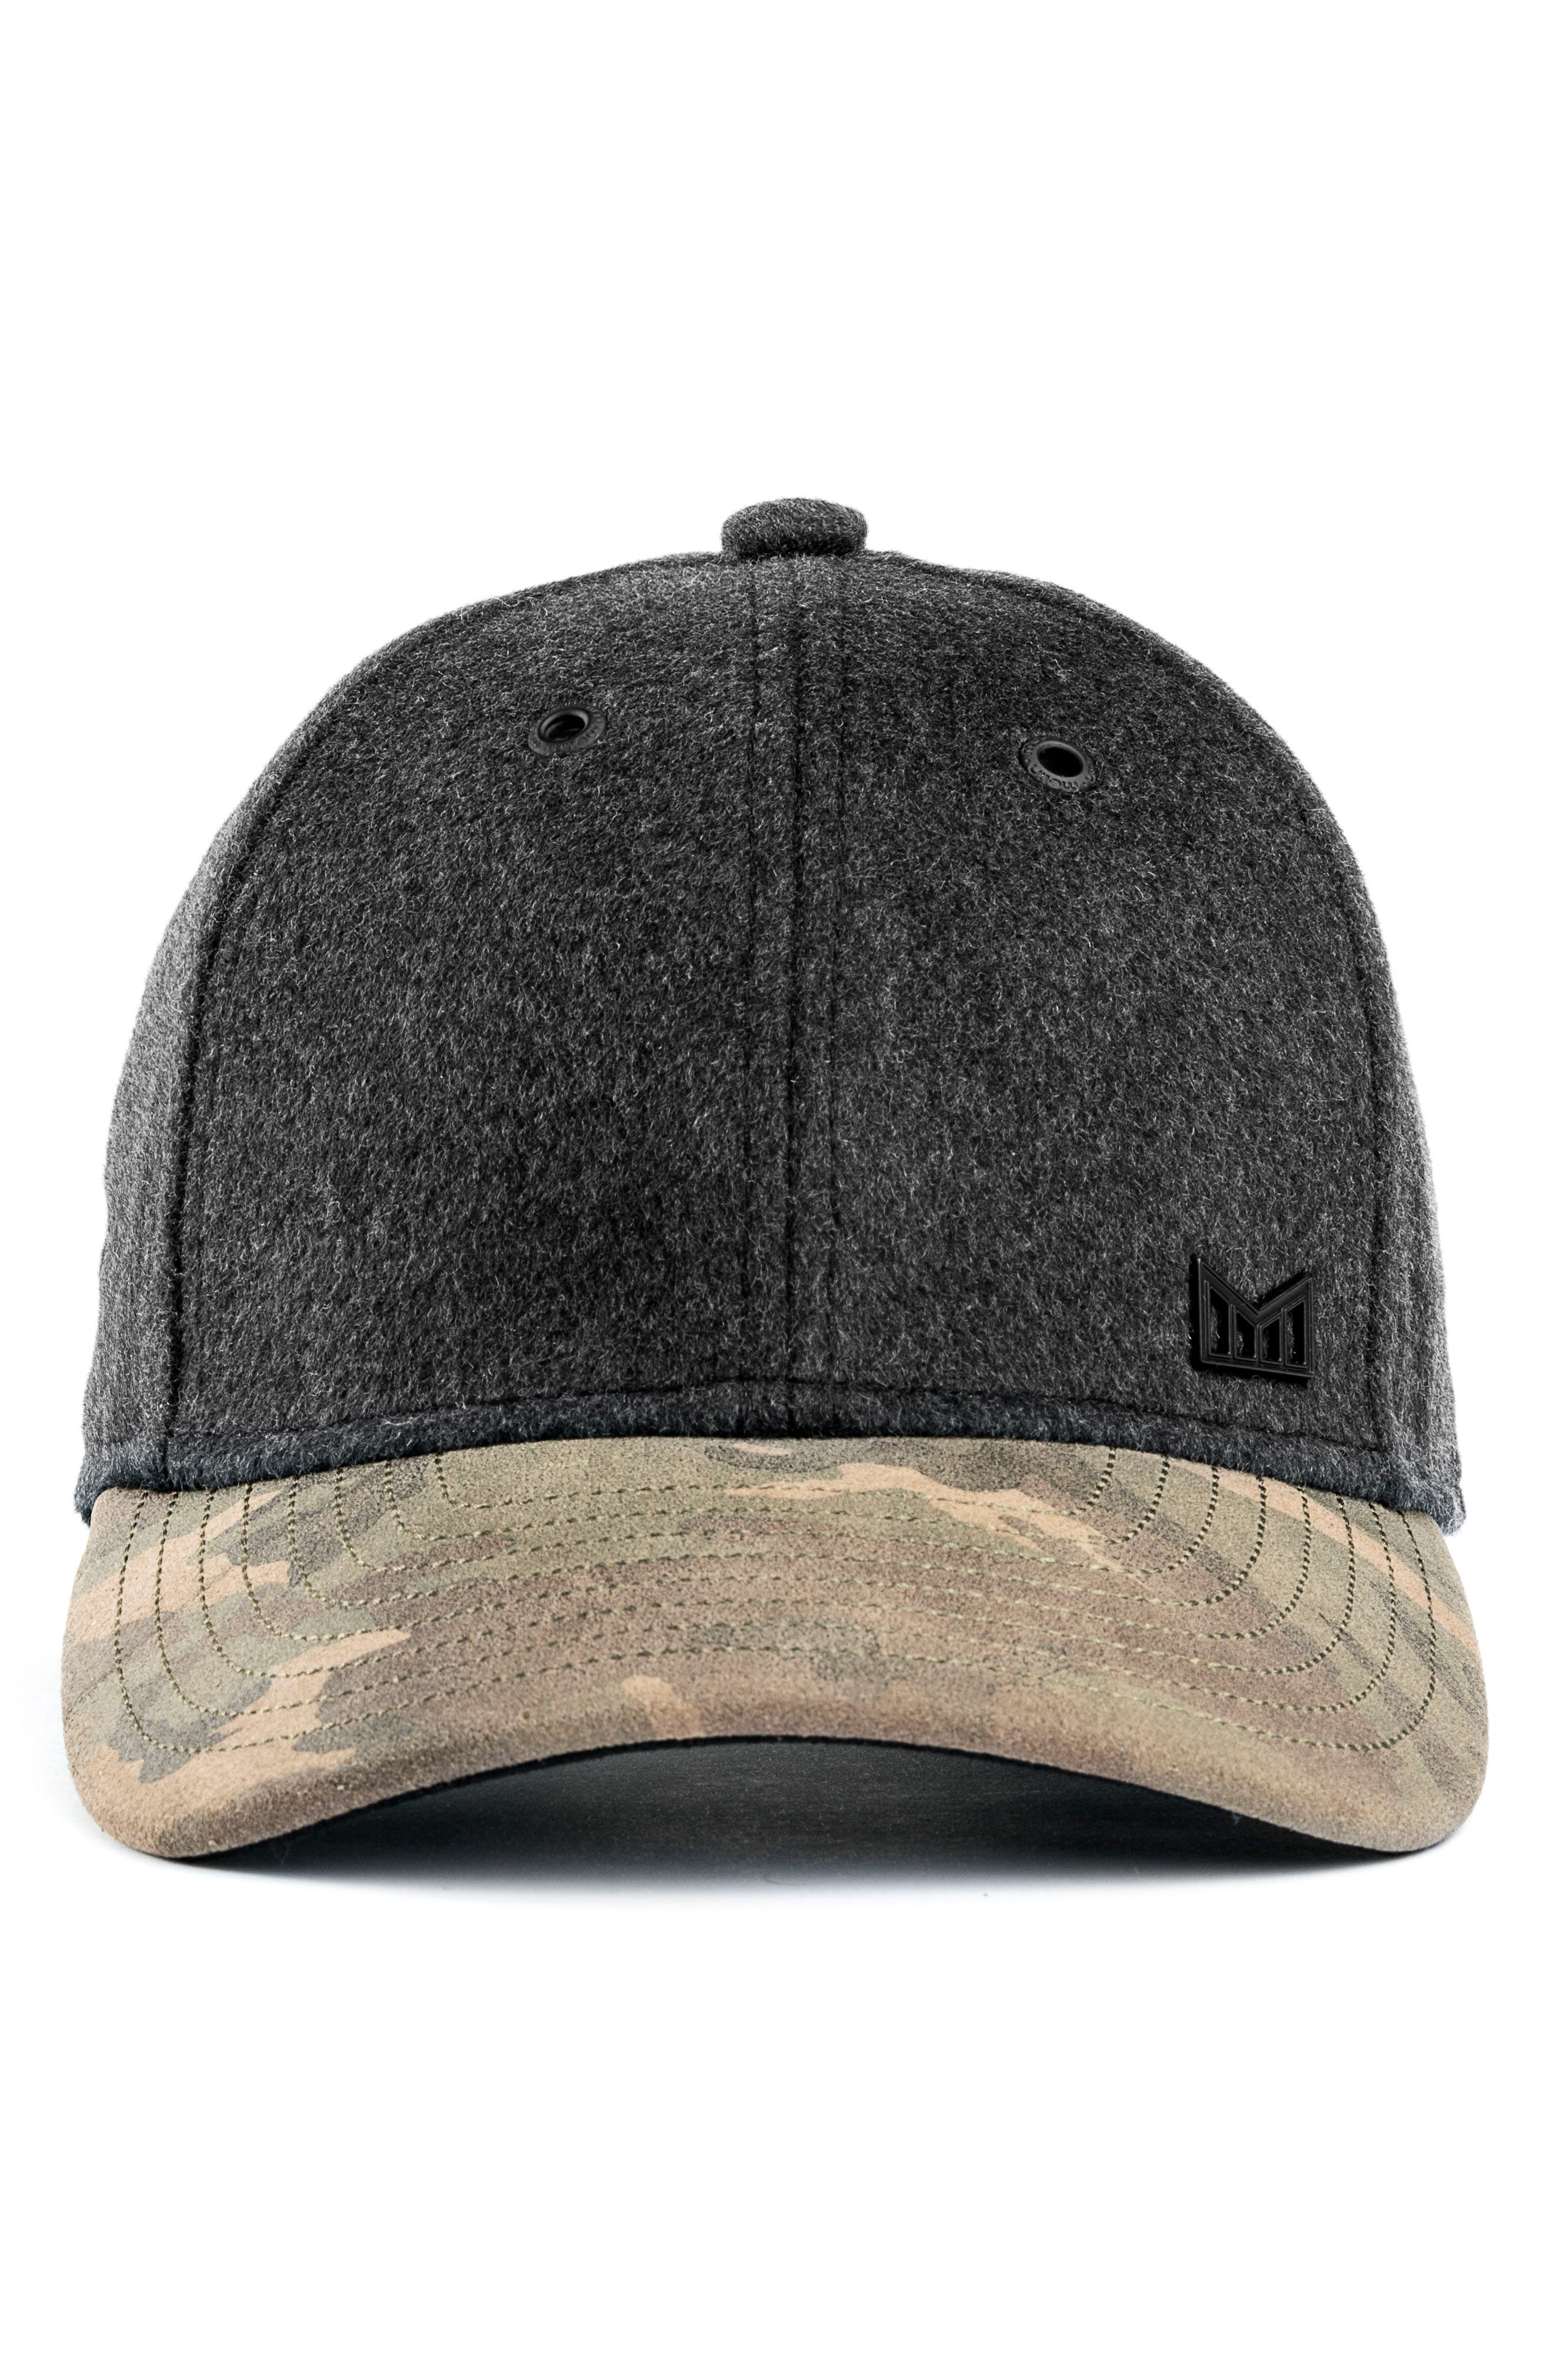 Maverick Ball Cap,                             Alternate thumbnail 6, color,                             Dark Charcoal